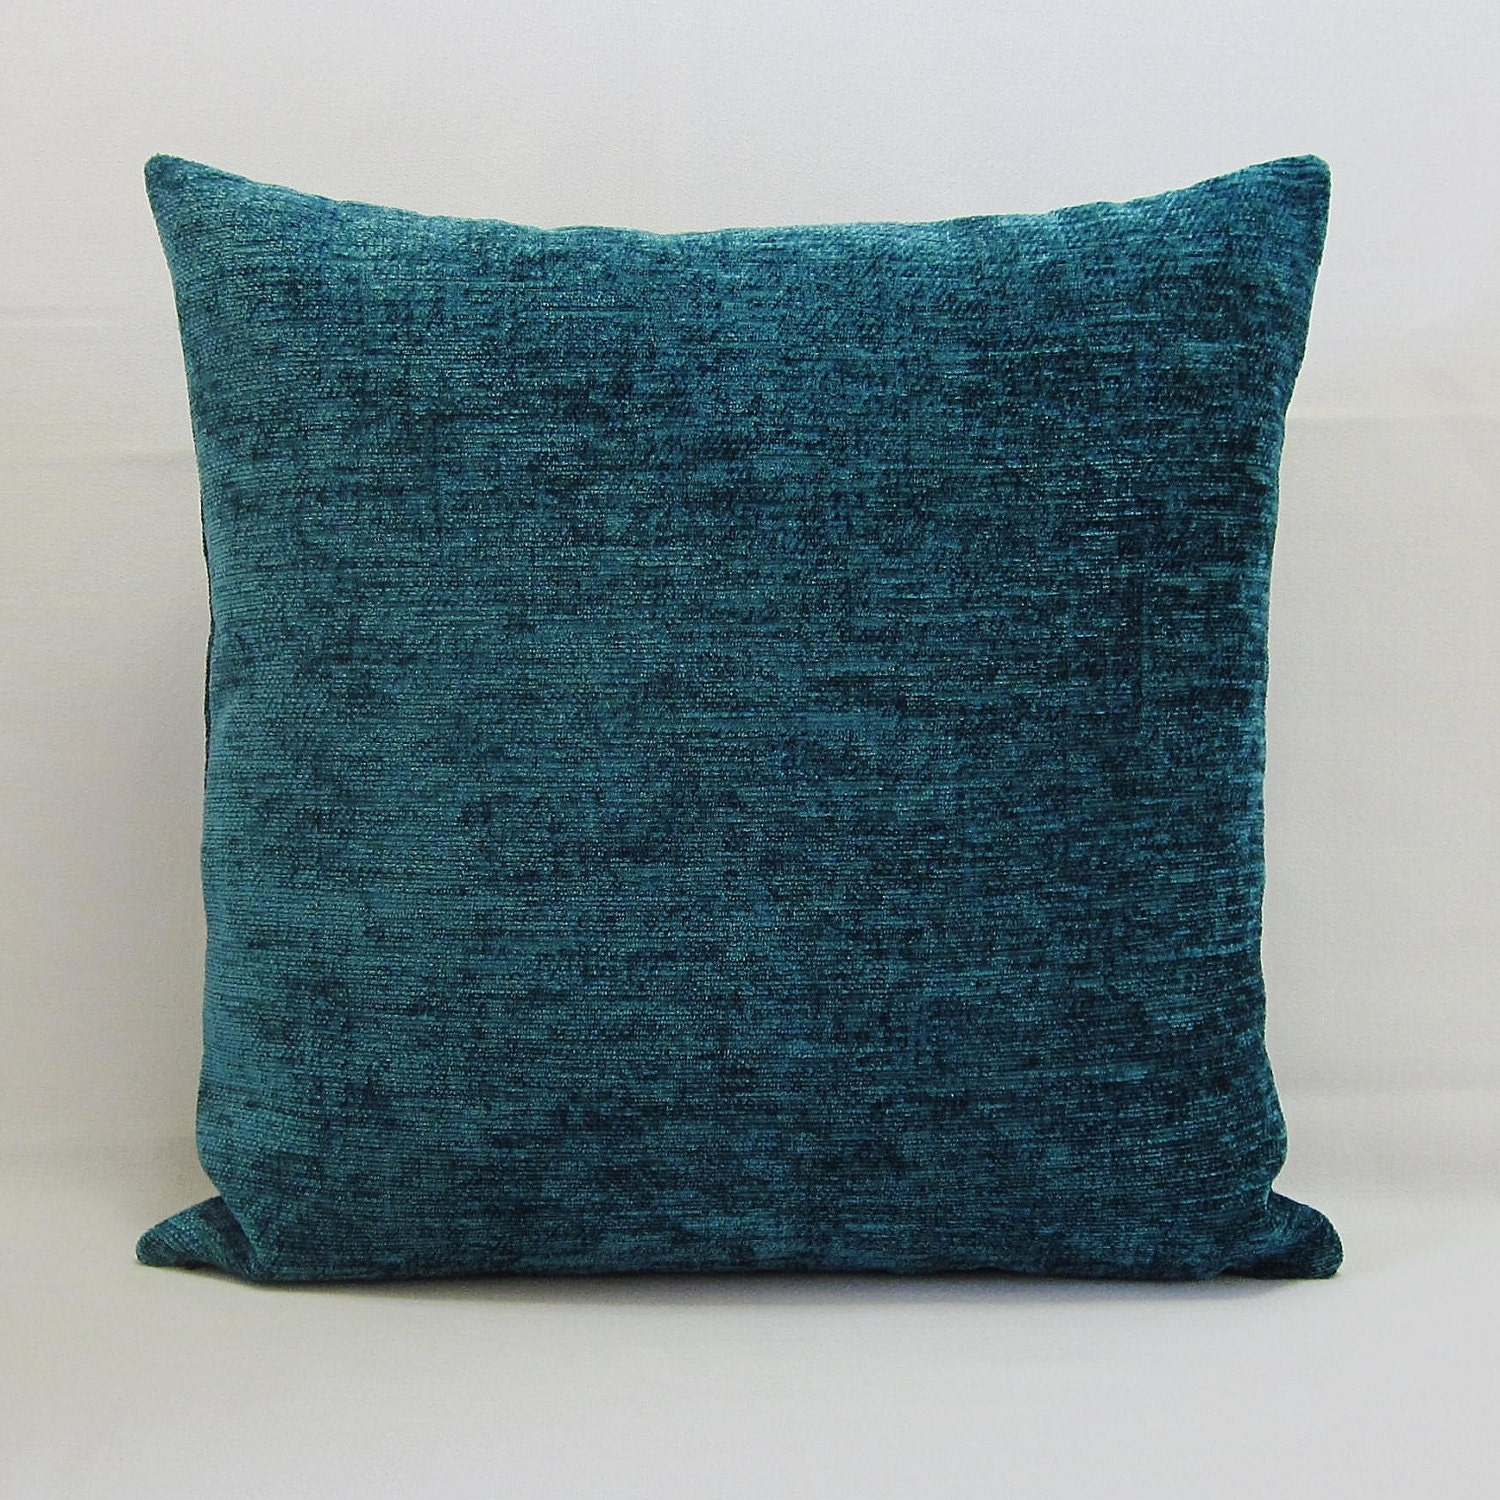 Decorative Pillows For Blue Couch : Teal Blue Throw Pillow Cover Decorative Accent Toss Couch